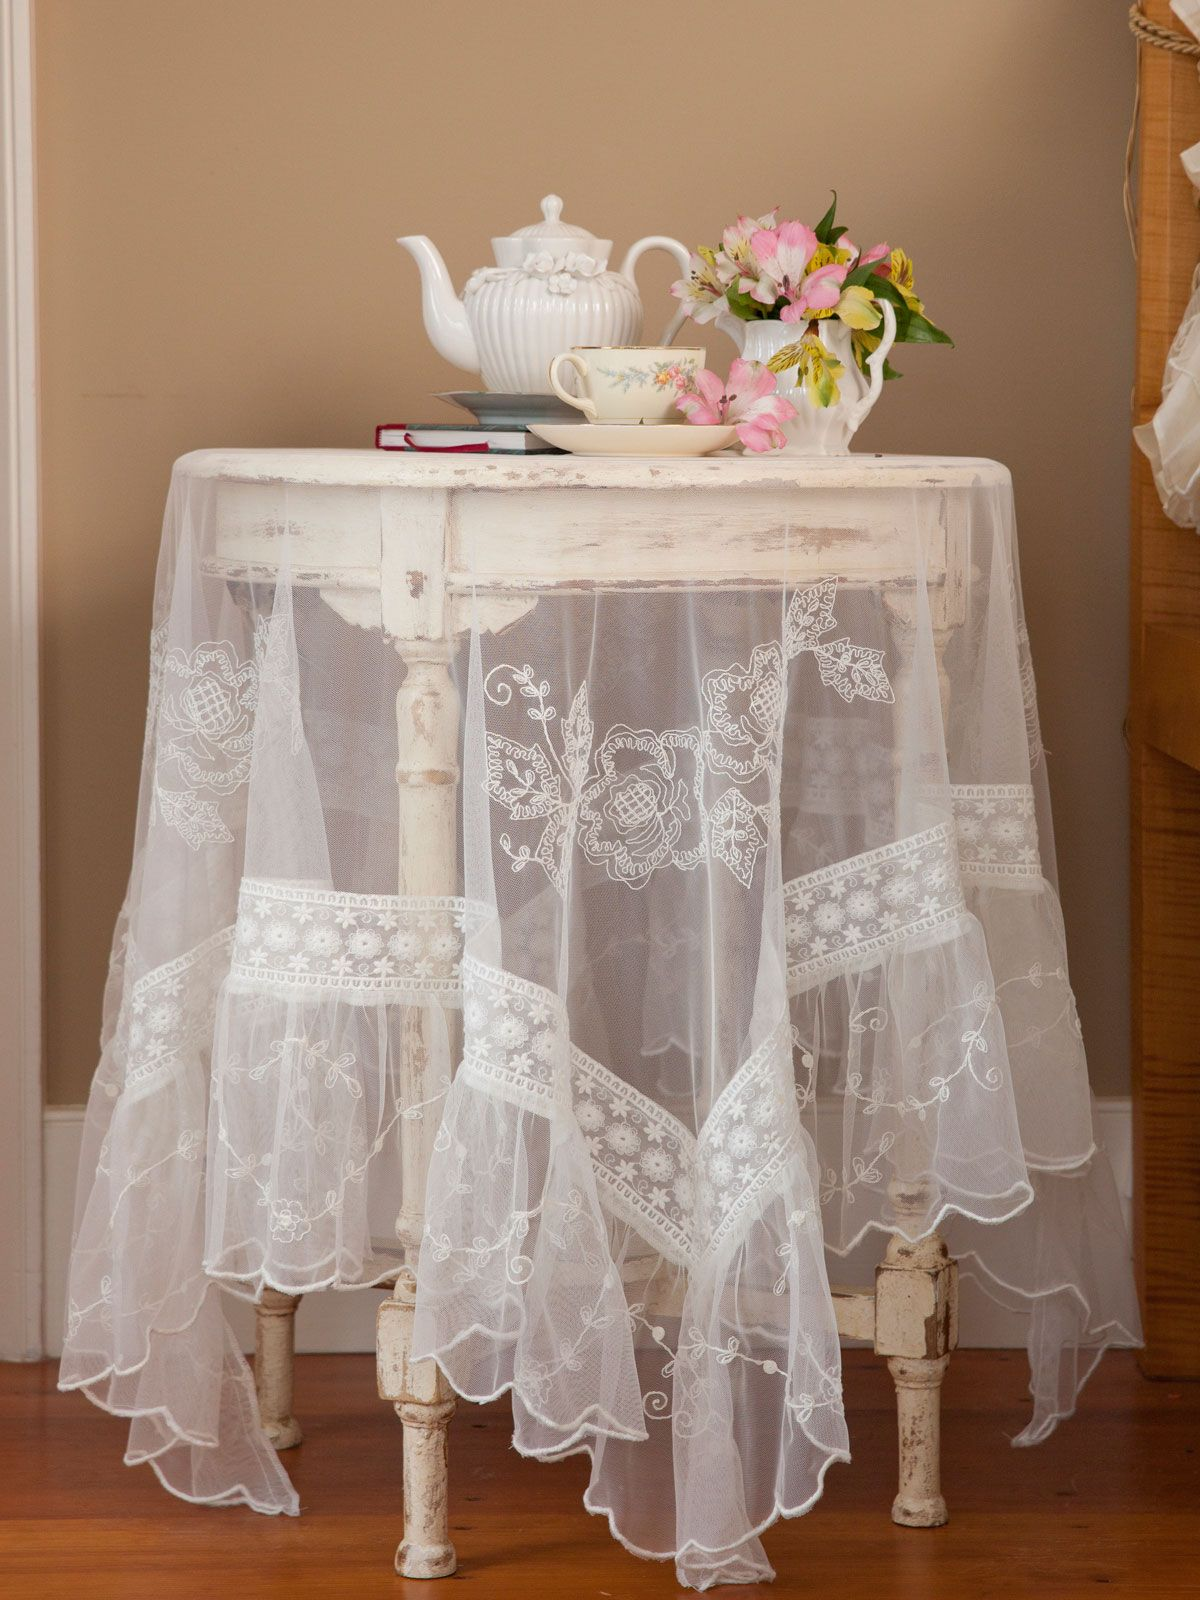 Charming Inspired By French Textiles And By The Elegant Victorian Aesthetic, The  Victorian Rose Tablecloth Collection Celebrates The Many Shades Of Blue  From The ...